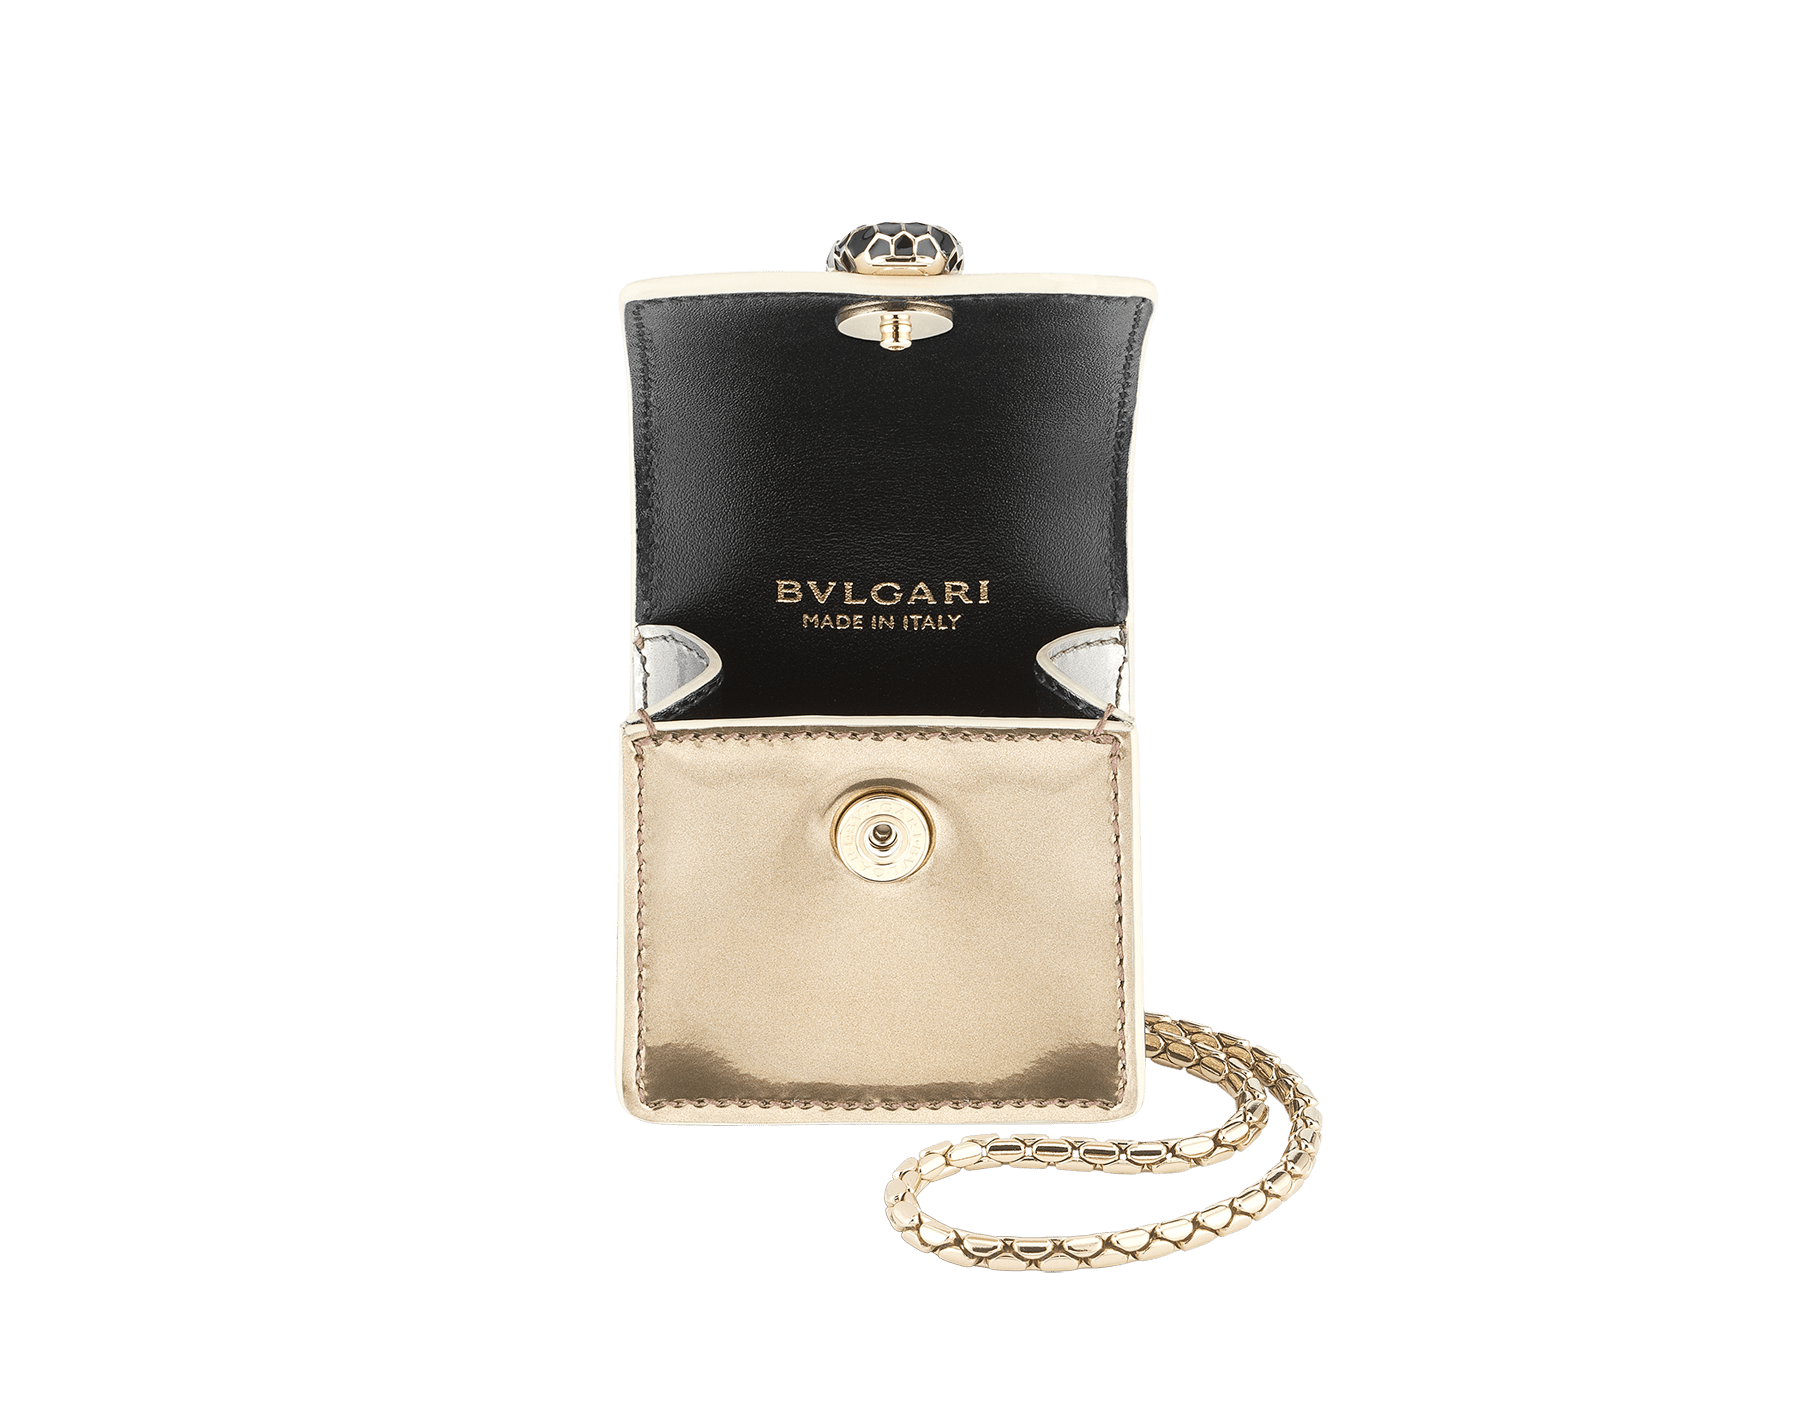 Serpenti Forever Holiday Season AirPods holder in antique bronze and silver brushed metallic calf leather. Snakehead closure in light gold plated brass embellished with black and glitter silver enamel, and black onyx eyes. 289489 image 2